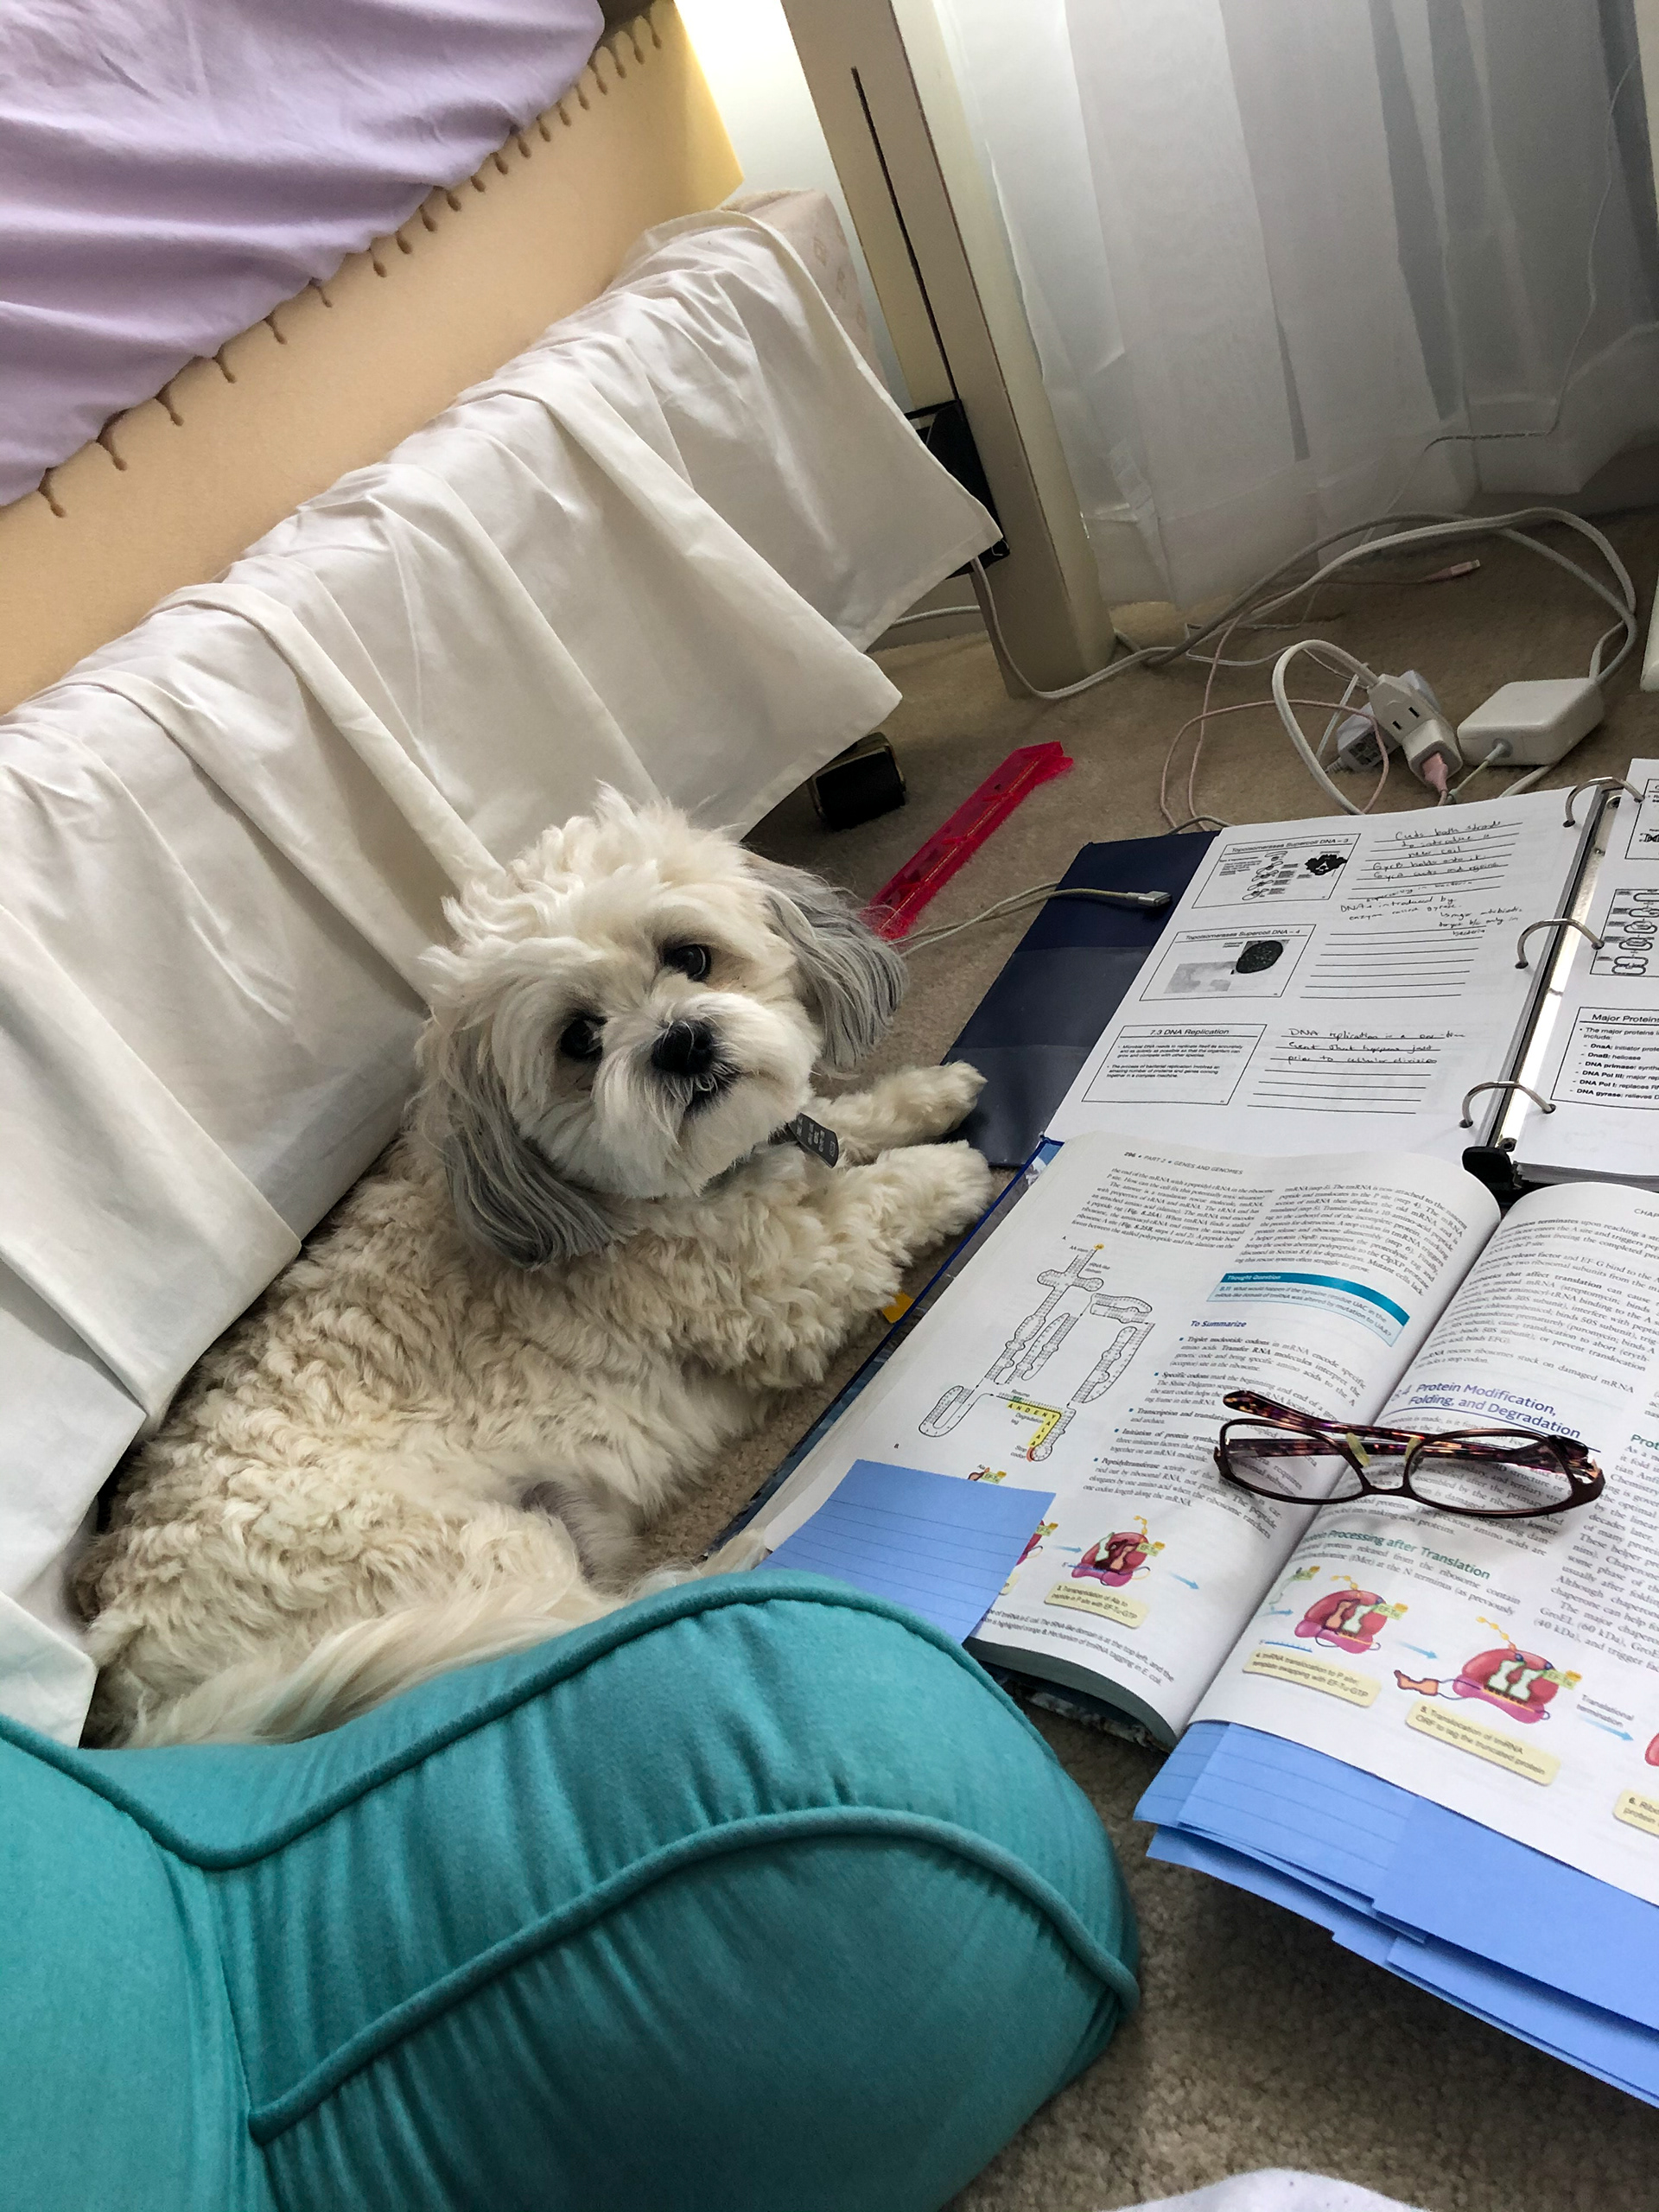 Hannah Angelella and her pup Louie studying together for a Microbiology test on April 29th, 2020. Hannah Angelella  |  Westminster, Maryland.